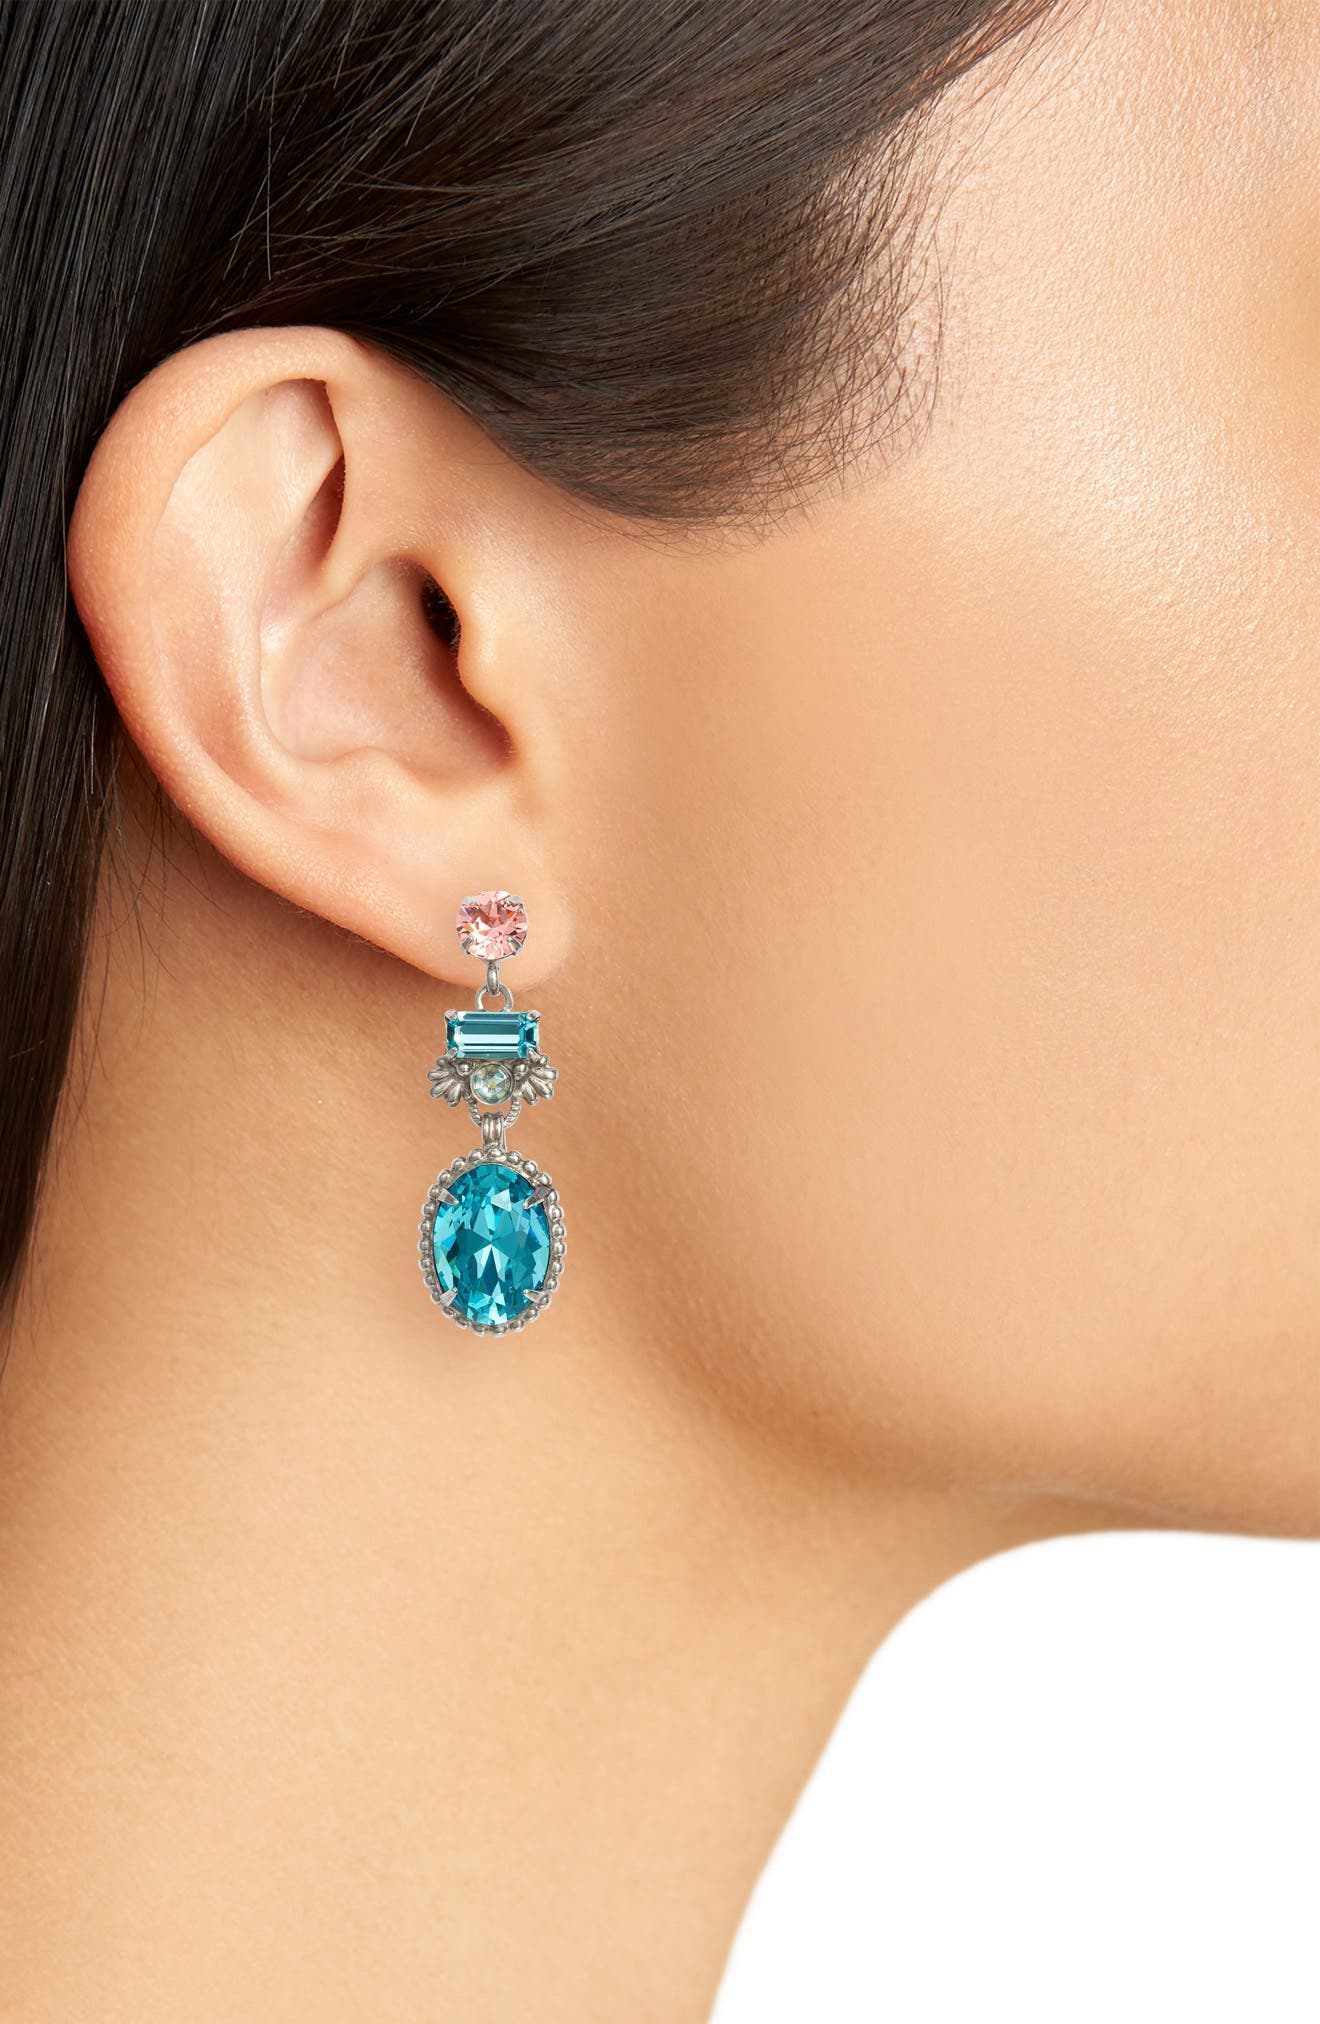 Bergenia Crystal Drop Earrings,                             Alternate thumbnail 2, color,                             Aqua/ Pink